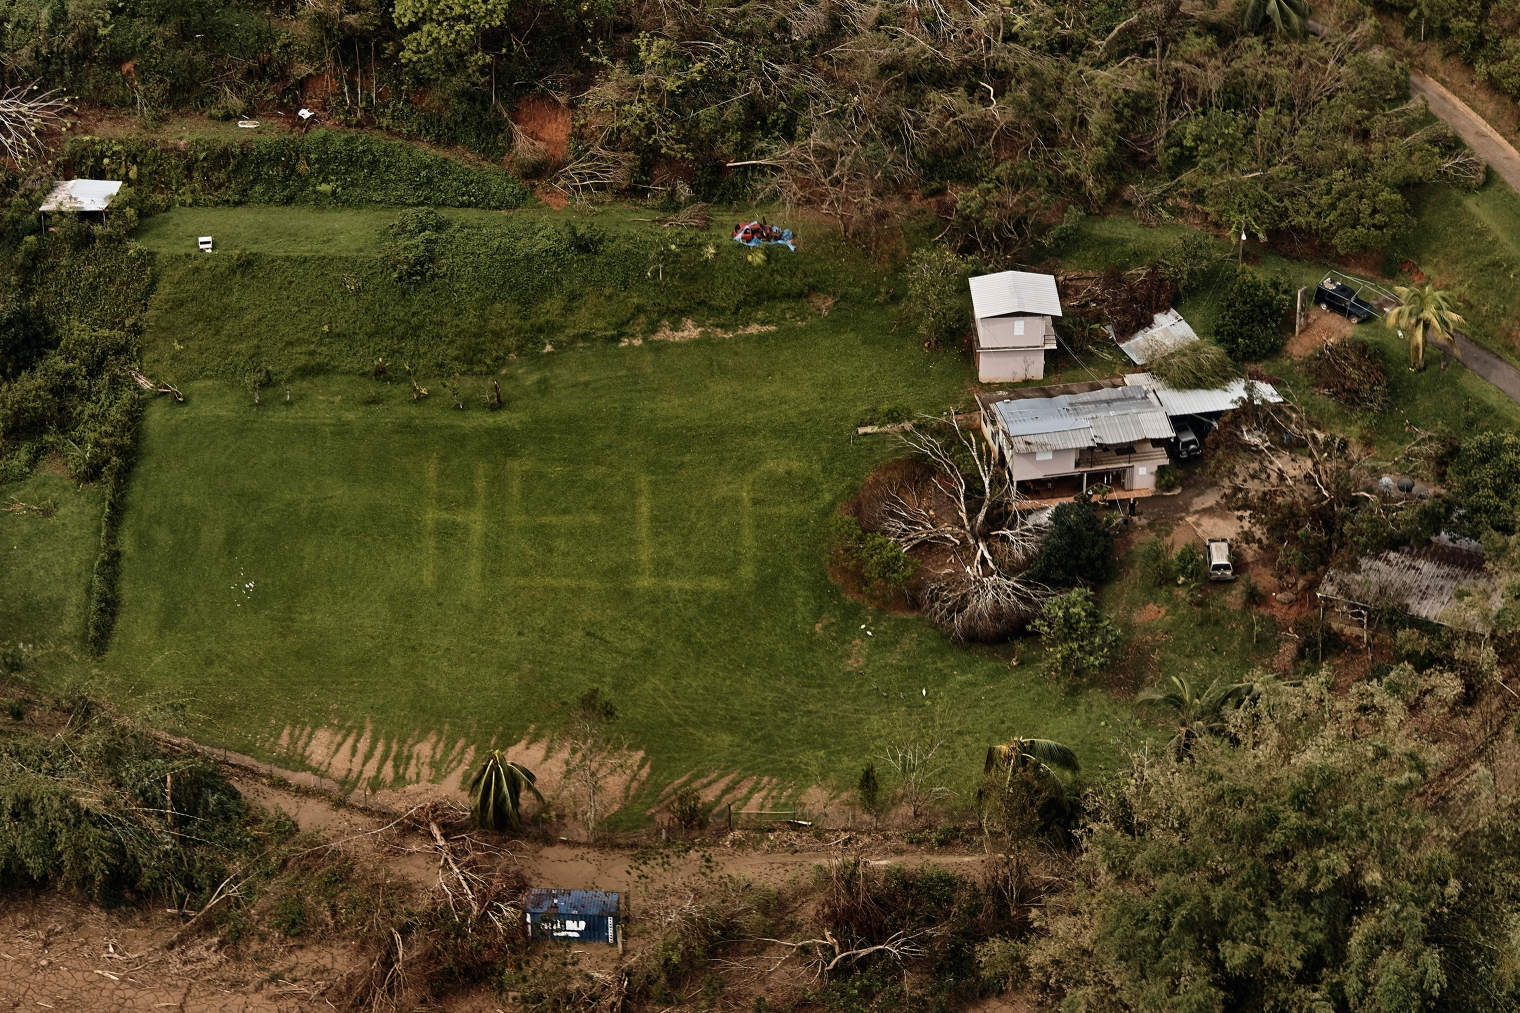 "The desperate message ""HELP"" is seen on the lawn of a home near Utuado, Puerto Rico, in early October. Photographer @andreskudacki, who was covering the aftermath of Hurricane Maria for TIME, came across this scene during a helicopter flyover in the central mountainous region, where rescuers had previously searched for those in need. Police who originally saw the sign landed to find people without food or water, isolated as a nearby river swelled."